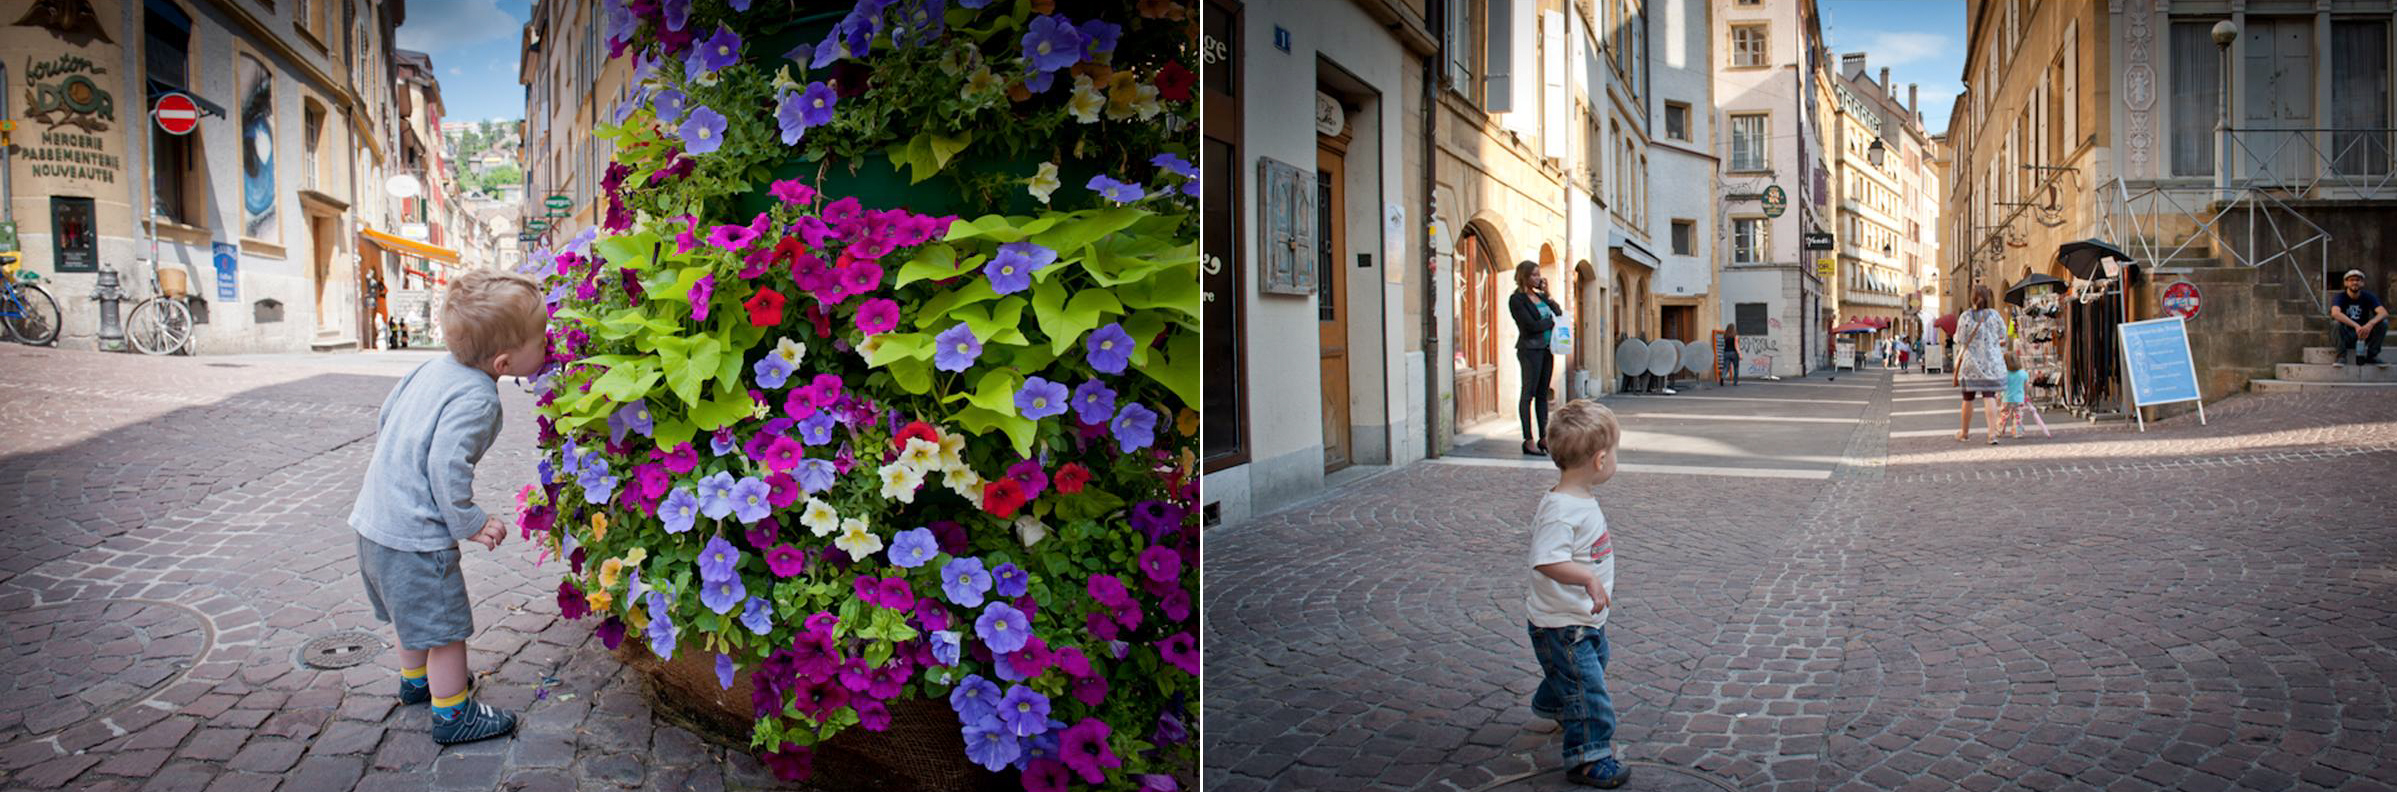 Sniffing flowers in Neuchatel and walking in the square